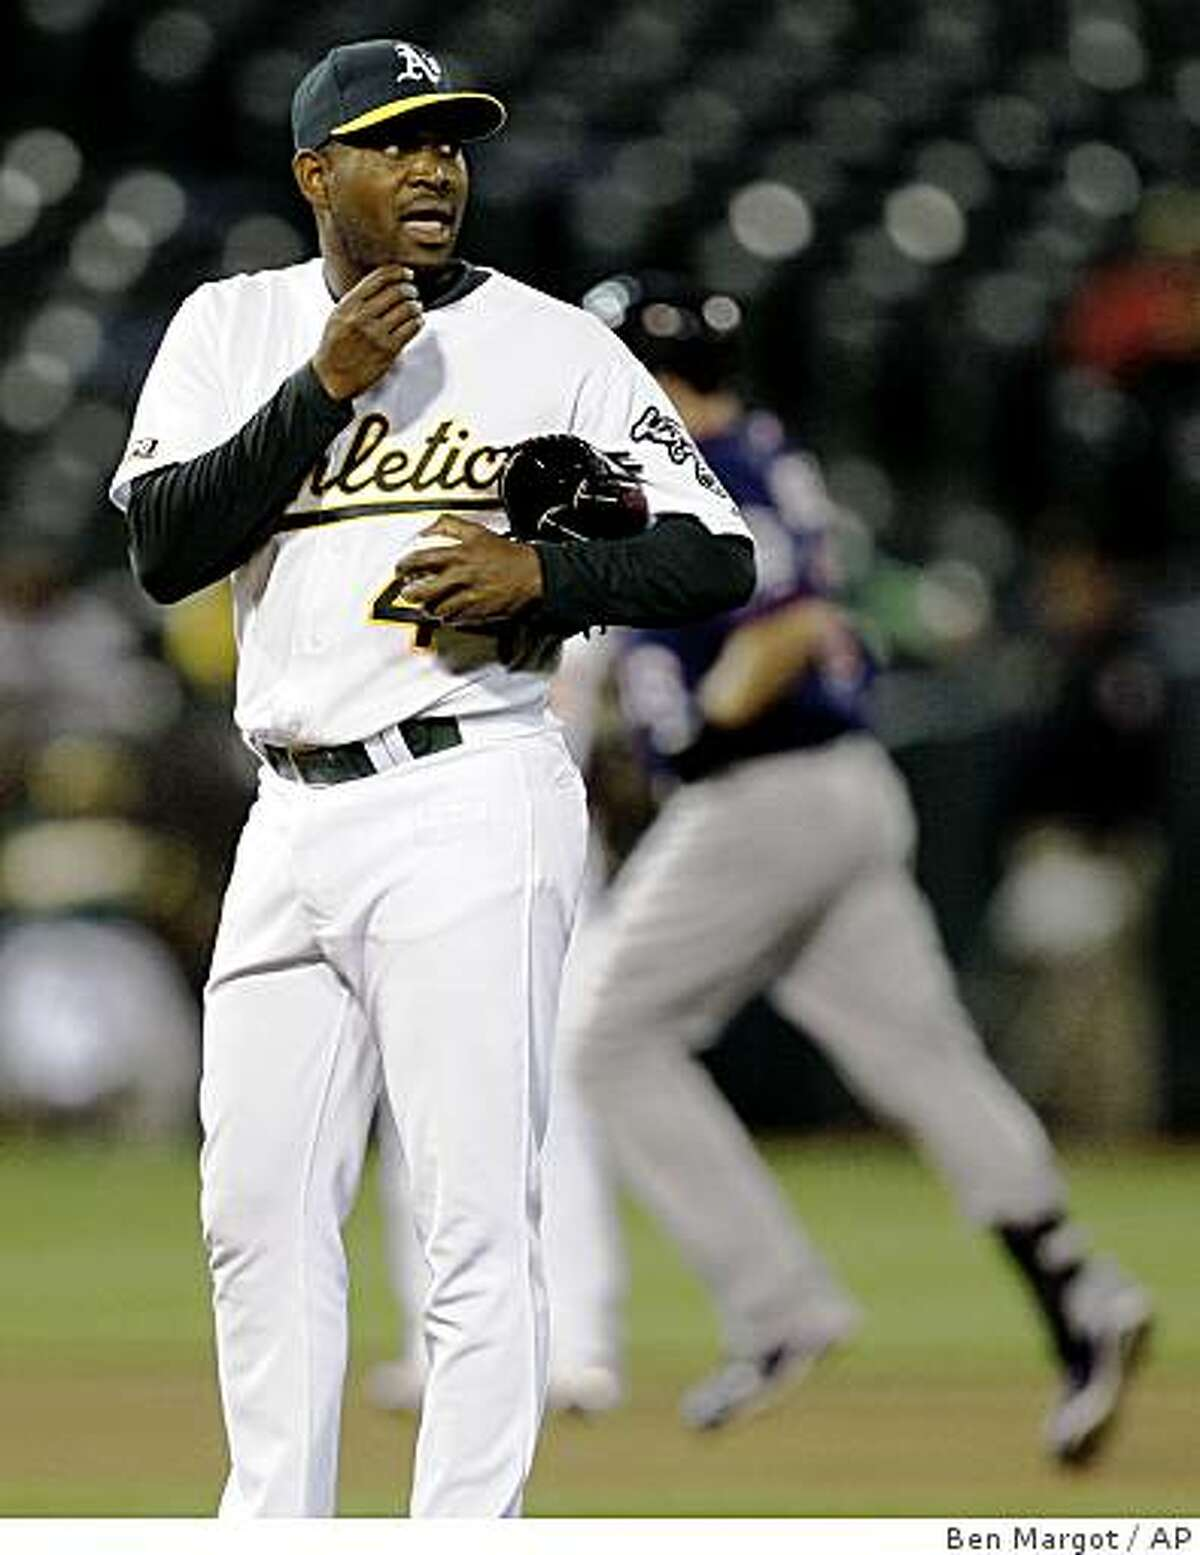 Oakland Athletics' Santiago Casilla, left, waits for Minnesota Twins' Jason Kubel to run the bases after giving up a three-run home run to Kubel in the seventh inning of a baseball game Tuesday, June 9, 2009, in Oakland, Calif. (AP Photo/Ben Margot)